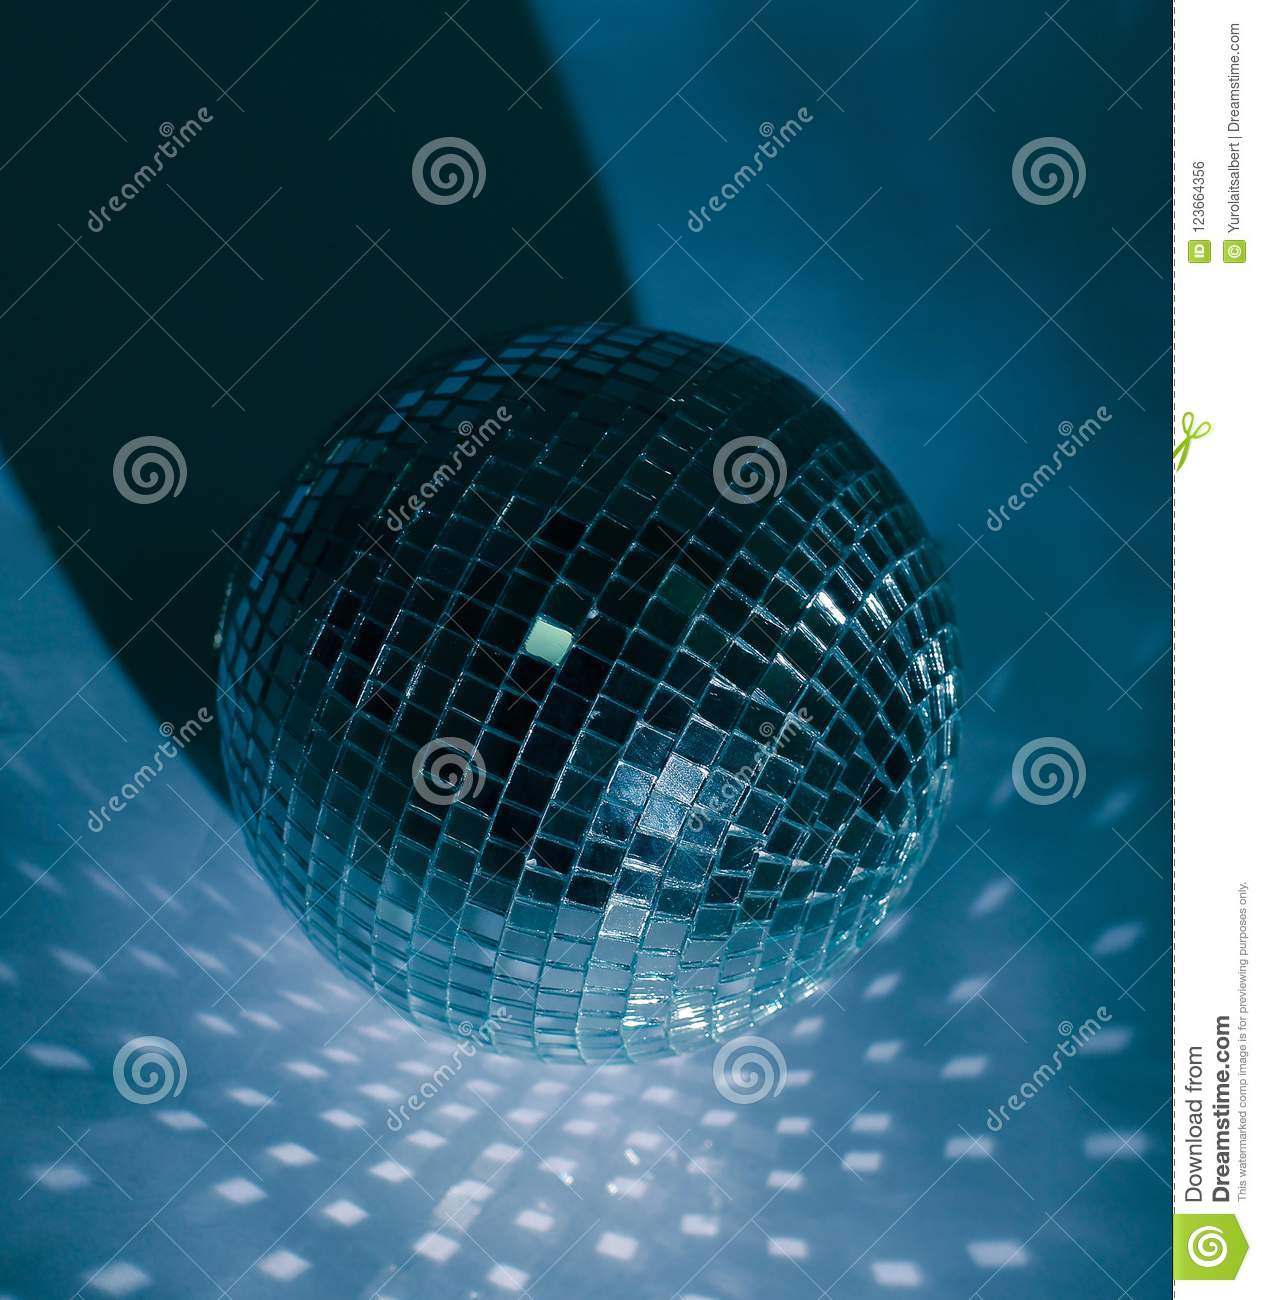 Mirror Ball Isolated On A Dark Background With Blue Backlight Stock